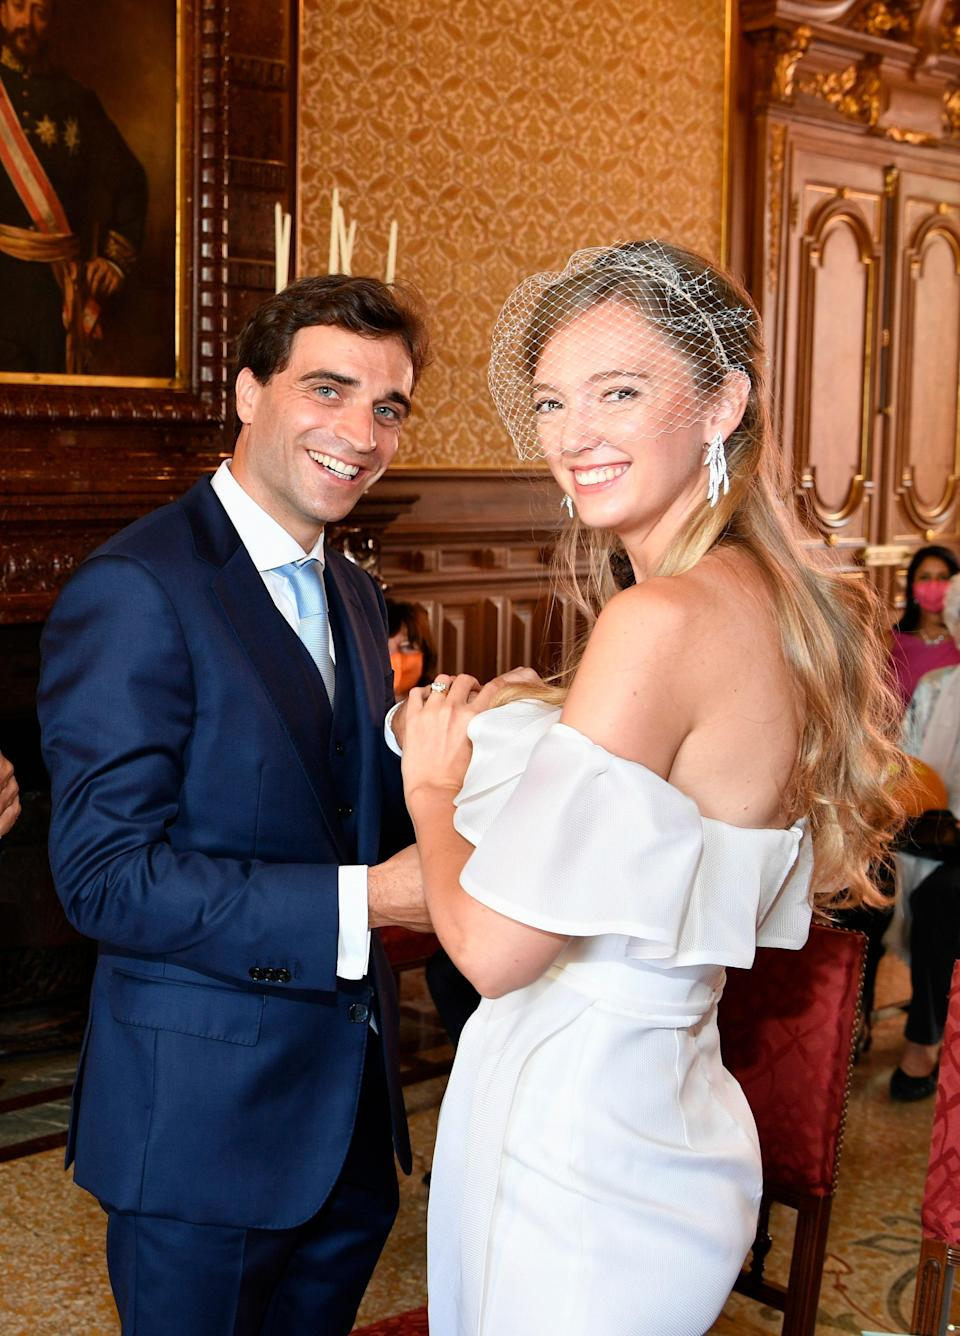 """Prince Eric—I mean, Belgian racing driver Jérôme d'Ambrosio married Eleonore von Habsburg—the archduchess of Austria and royal princess of Hungary, Bohemia, and Croatia—on July 20, <a href=""""https://people.com/royals/royal-wedding-eleonore-von-habsburg-austria-jerome-dambrosio/"""" rel=""""nofollow noopener"""" target=""""_blank"""" data-ylk=""""slk:according to People"""" class=""""link rapid-noclick-resp"""">according to <em>People</em></a>. The pair, like <a href=""""https://www.glamour.com/story/princess-beatrice-wedding-photos-queen-elizabeth-tiara-wedding-dress-borrowed?mbid=synd_yahoo_rss"""" rel=""""nofollow noopener"""" target=""""_blank"""" data-ylk=""""slk:Princess Beatrice and Edoardo Mapelli Mozzi"""" class=""""link rapid-noclick-resp"""">Princess Beatrice and Edoardo Mapelli Mozzi</a>, were forced to cancel their original plans due to the <a href=""""https://www.glamour.com/about/coronavirus?mbid=synd_yahoo_rss"""" rel=""""nofollow noopener"""" target=""""_blank"""" data-ylk=""""slk:coronavirus pandemic"""" class=""""link rapid-noclick-resp"""">coronavirus pandemic</a>. They opted, instead, to hold a small civil ceremony in Monaco."""